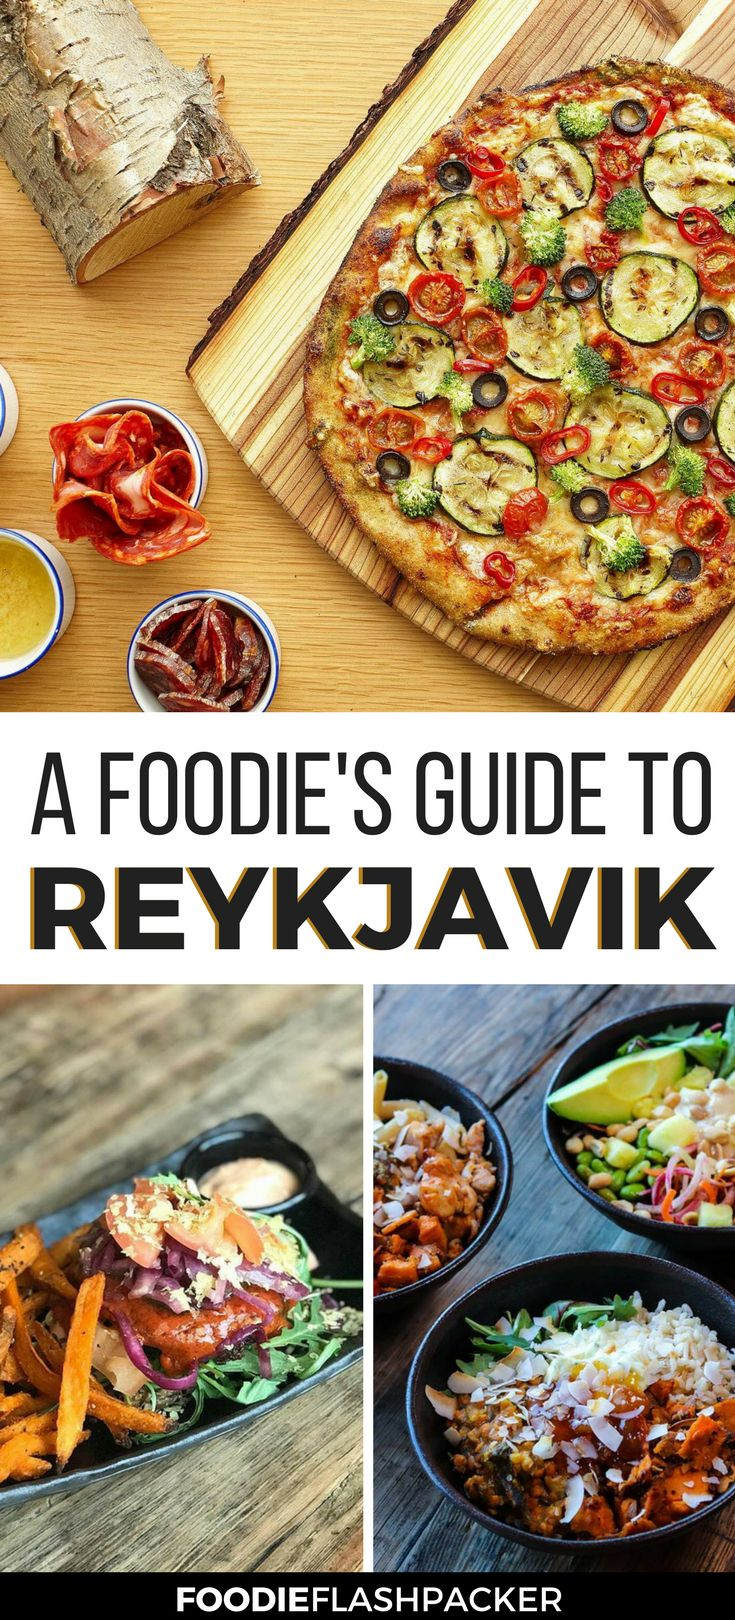 Looking for some great places to eat in Reykjavik? I've teamed up with a few of my blogger friends to bring you this list of the best Reykjavik restaurants, so check out where to eat in Reykjavik, Iceland.   Reykjavik Iceland food   Reykjavik food restaurant   Reykjavik best restaurant   Reykjavik food cheap   Reykjavik restaurant food #reykjavik #foodblog #restaurants - via @foodieflashpack